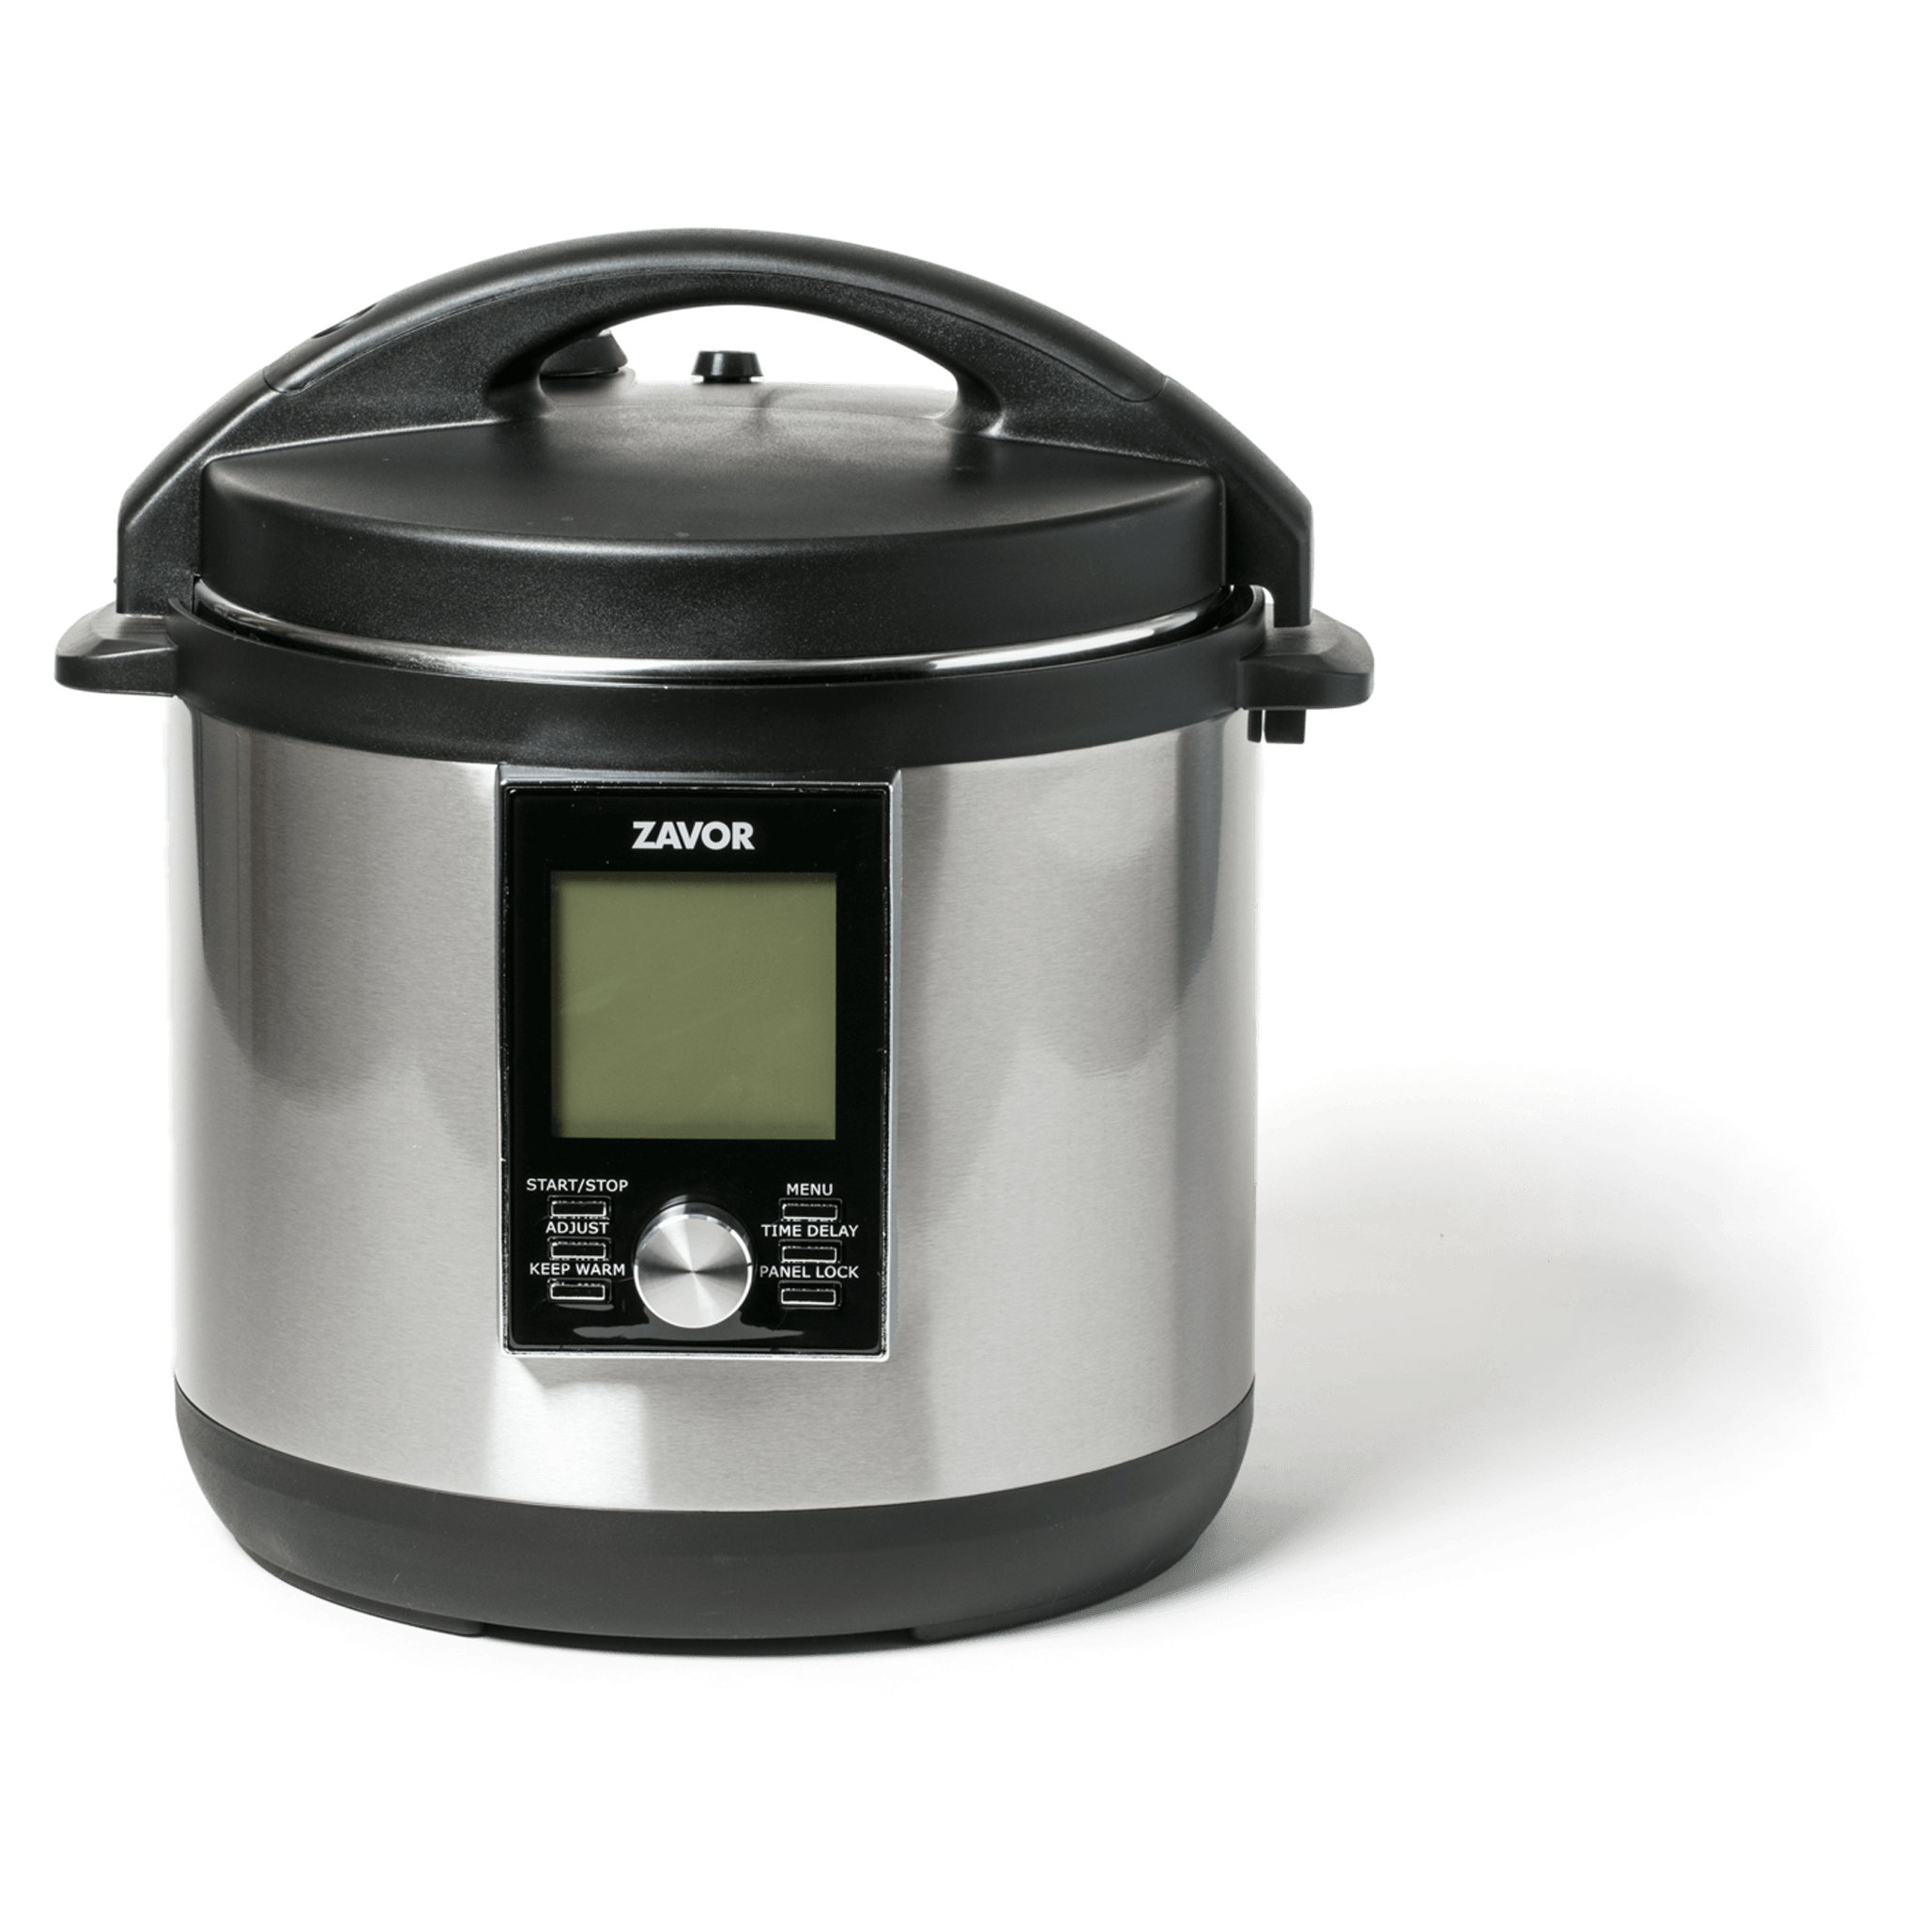 How To Make Rice In A Pressure Cooker Cook S Illustrated